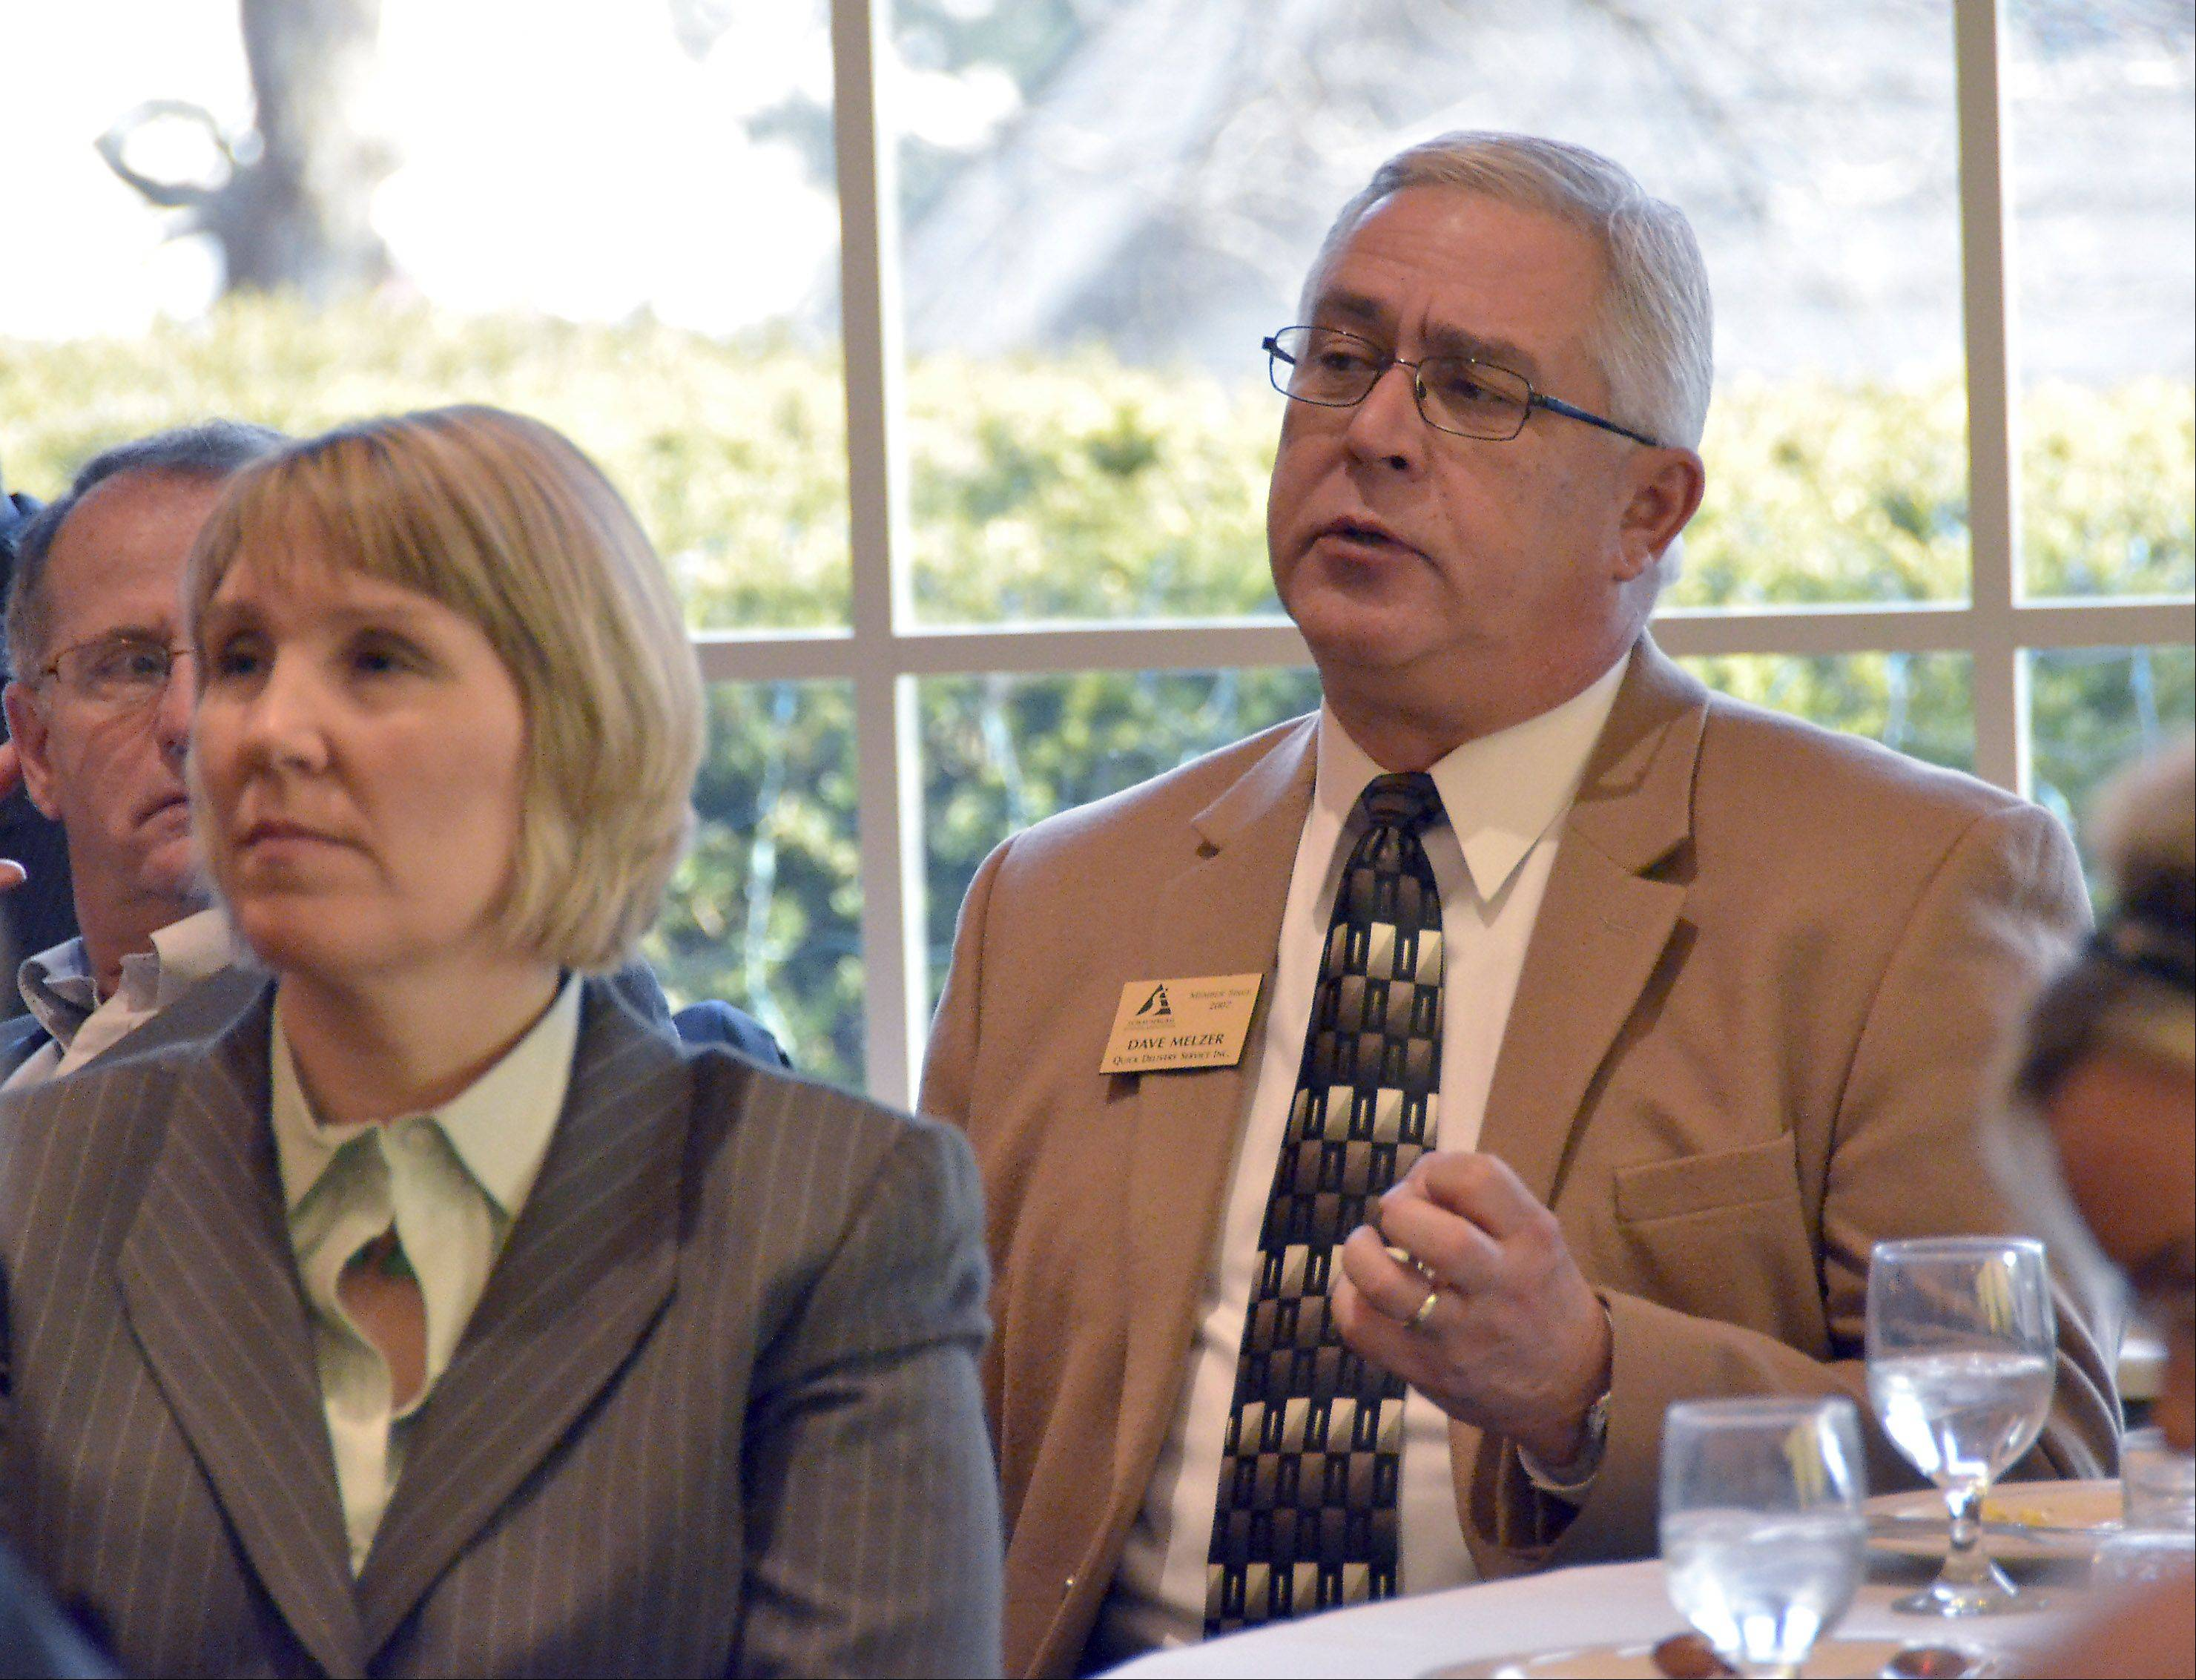 Dave Melzer with Quick Delivery Service asks Schaumburg Mayor Al Larson about emerald ash borer at the Schaumburg Business Association meeting Tuesday at Chandler's in Schaumburg.